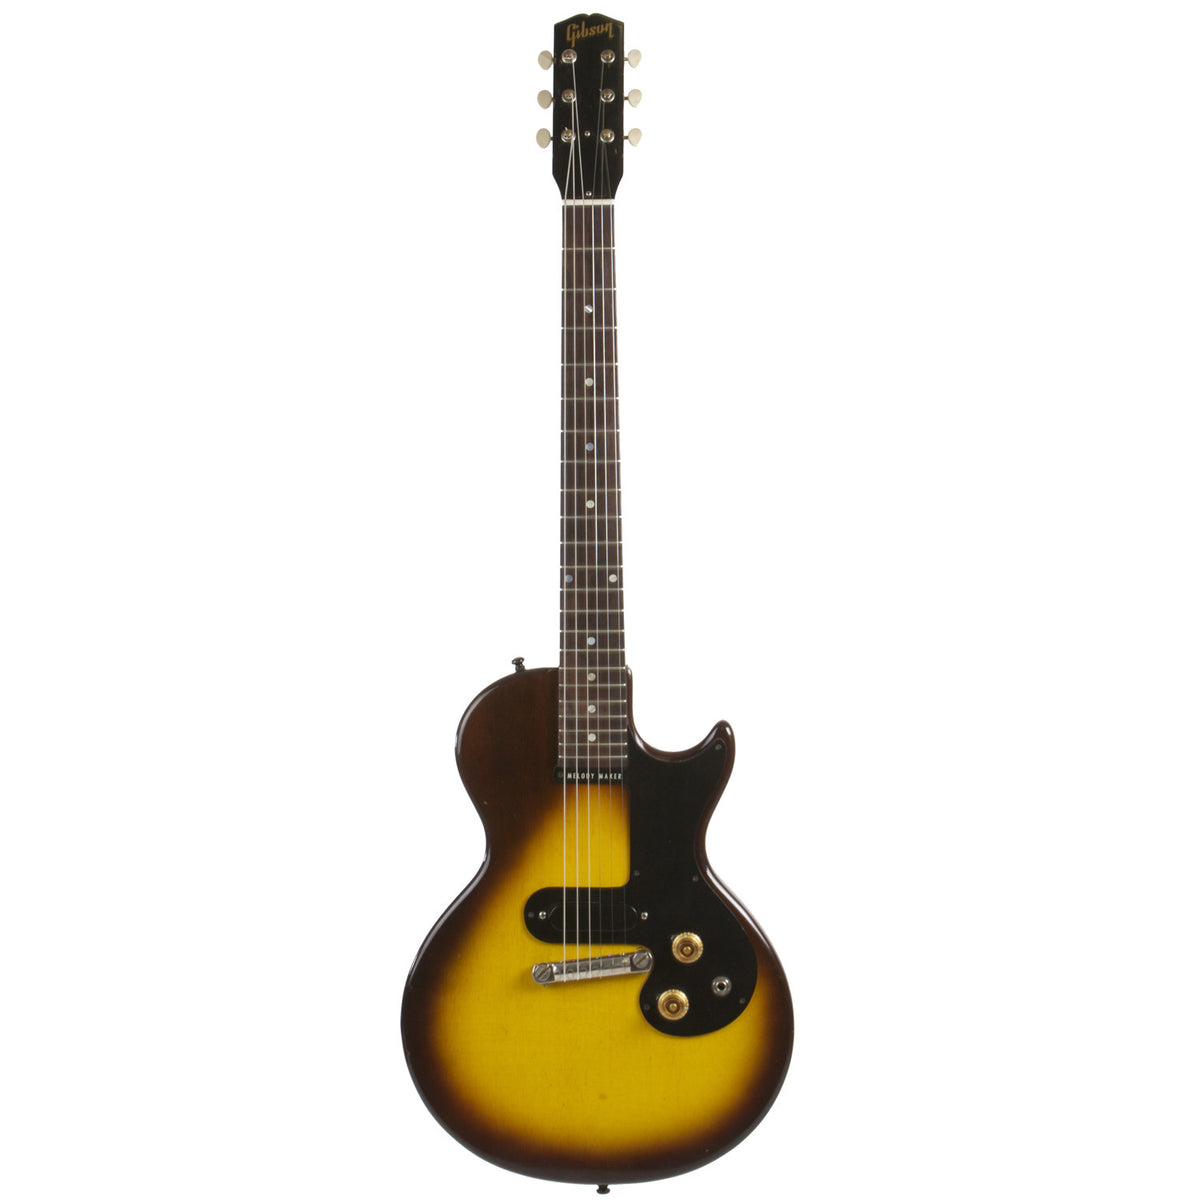 1960 Gibson Melody Maker - Garrett Park Guitars  - 3